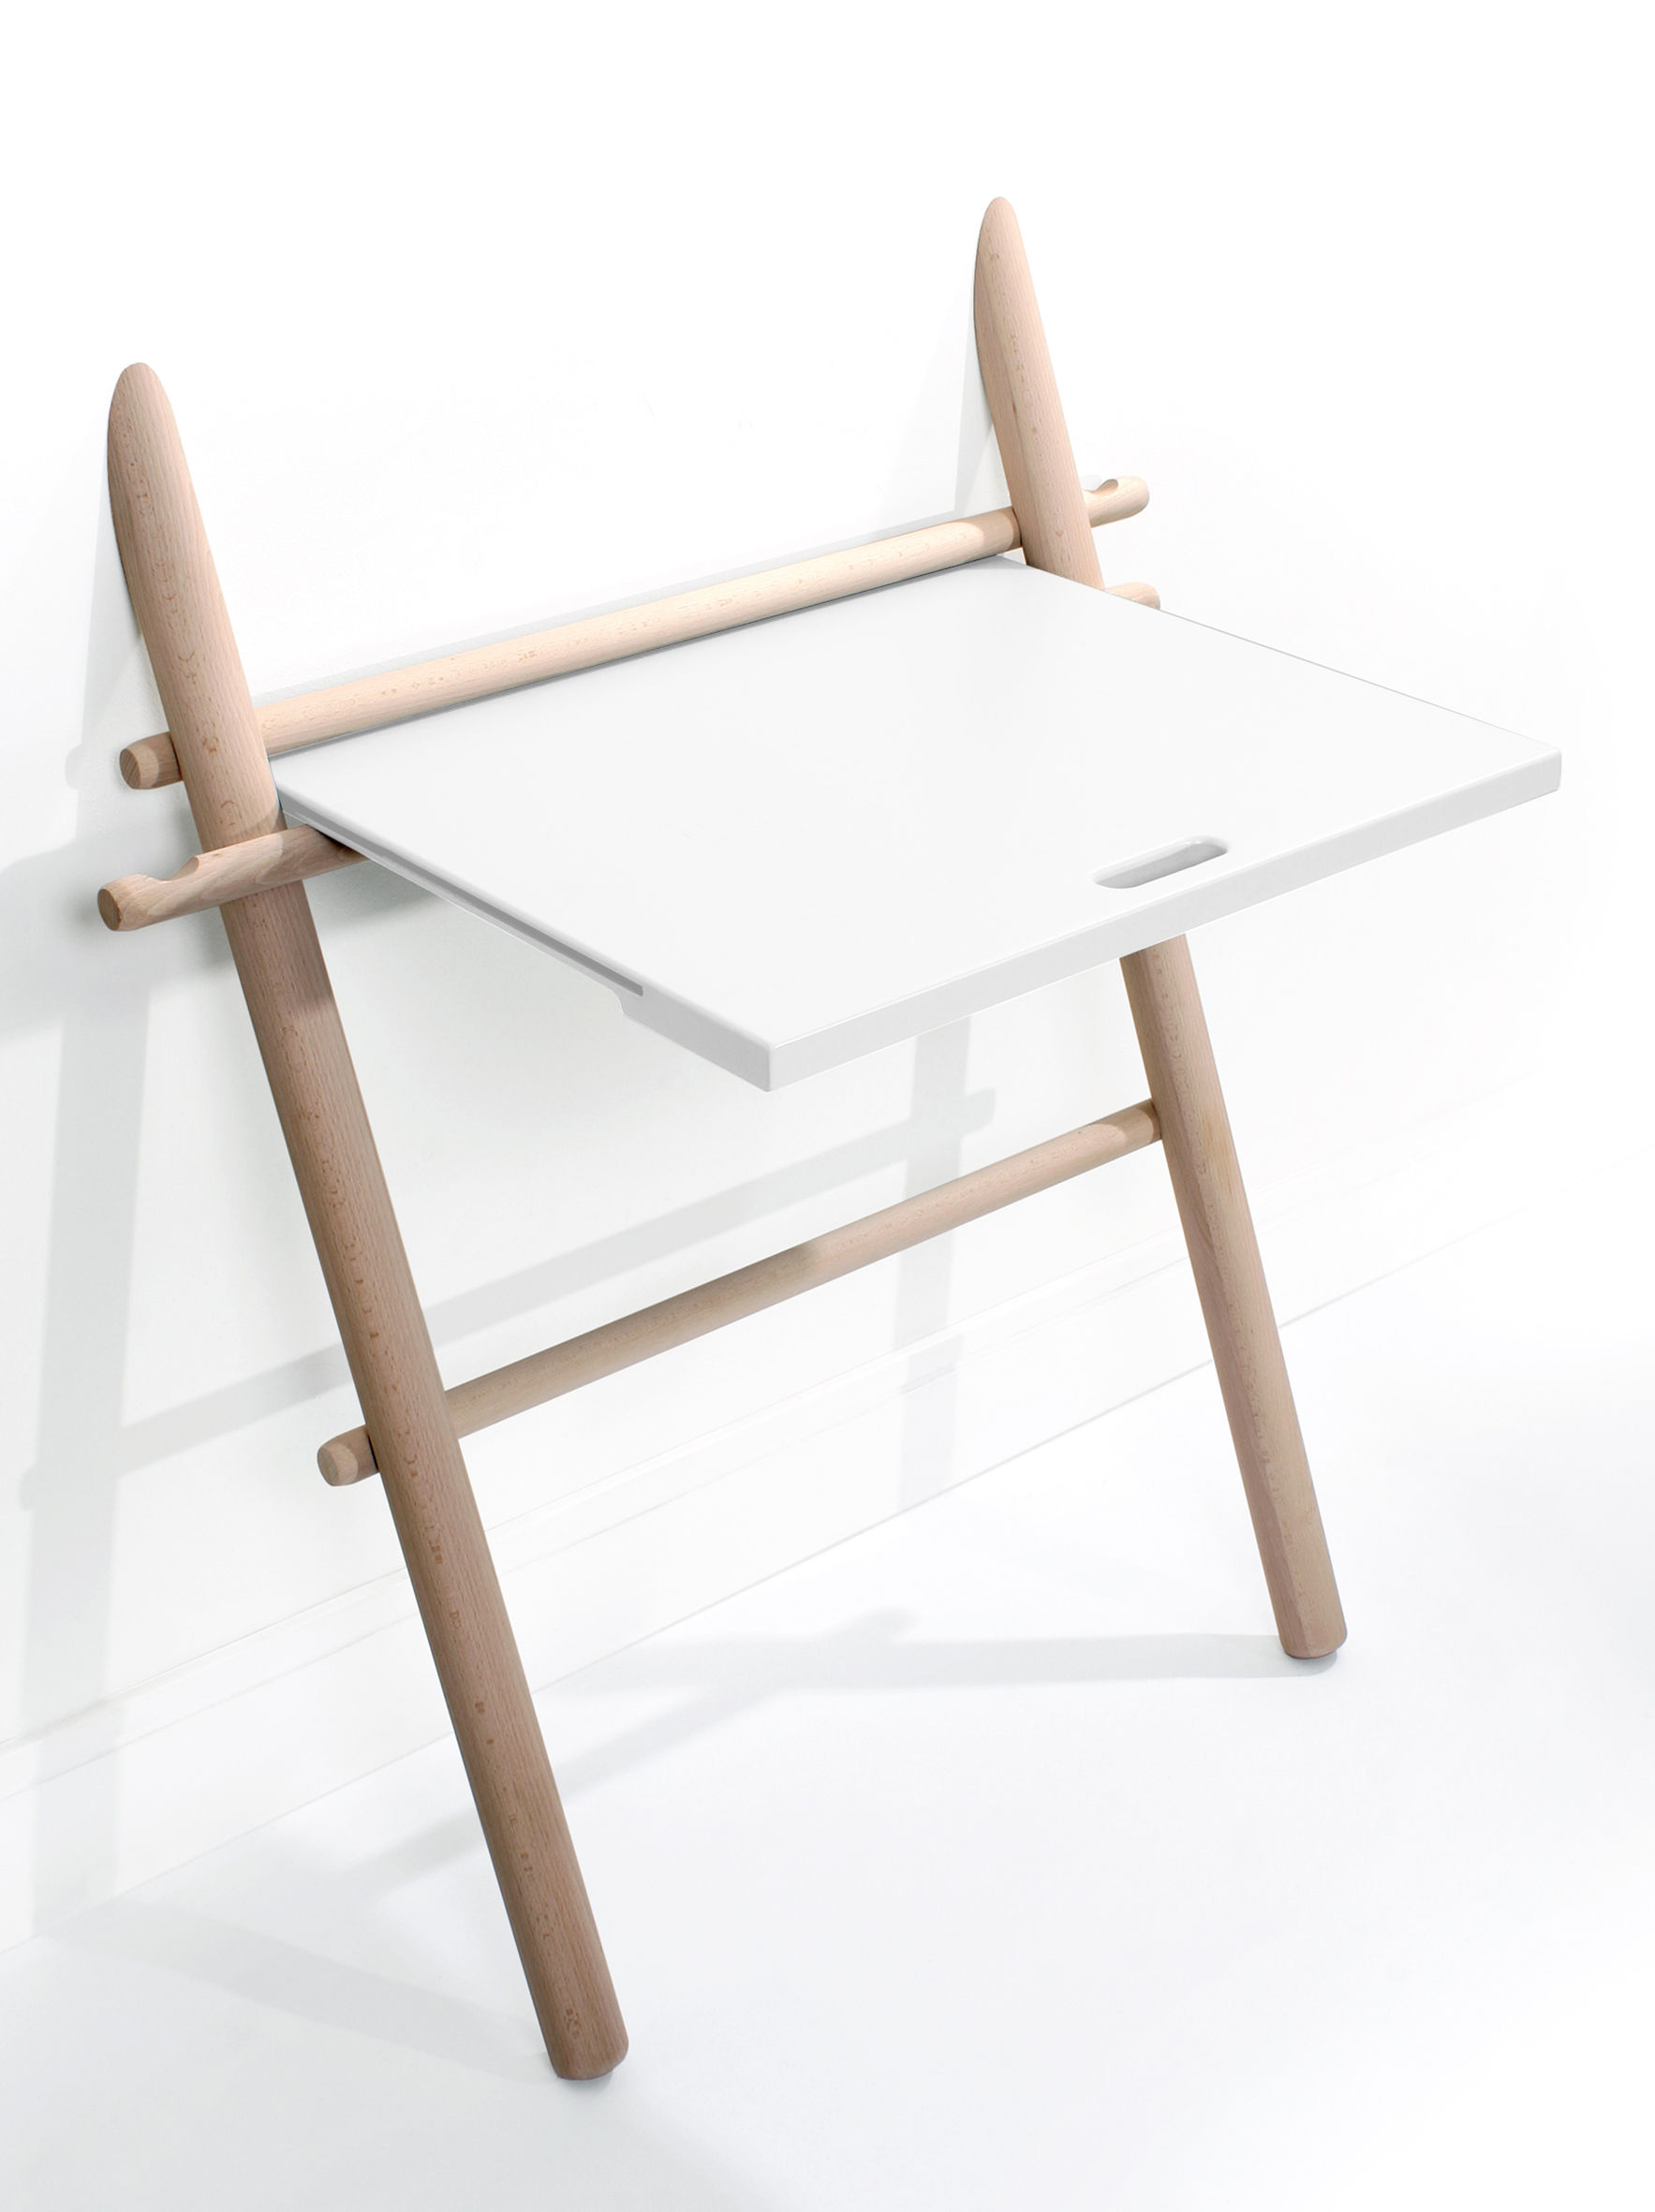 bureau appunto pliable table d 39 appoint h tre plateau blanc enostudio. Black Bedroom Furniture Sets. Home Design Ideas